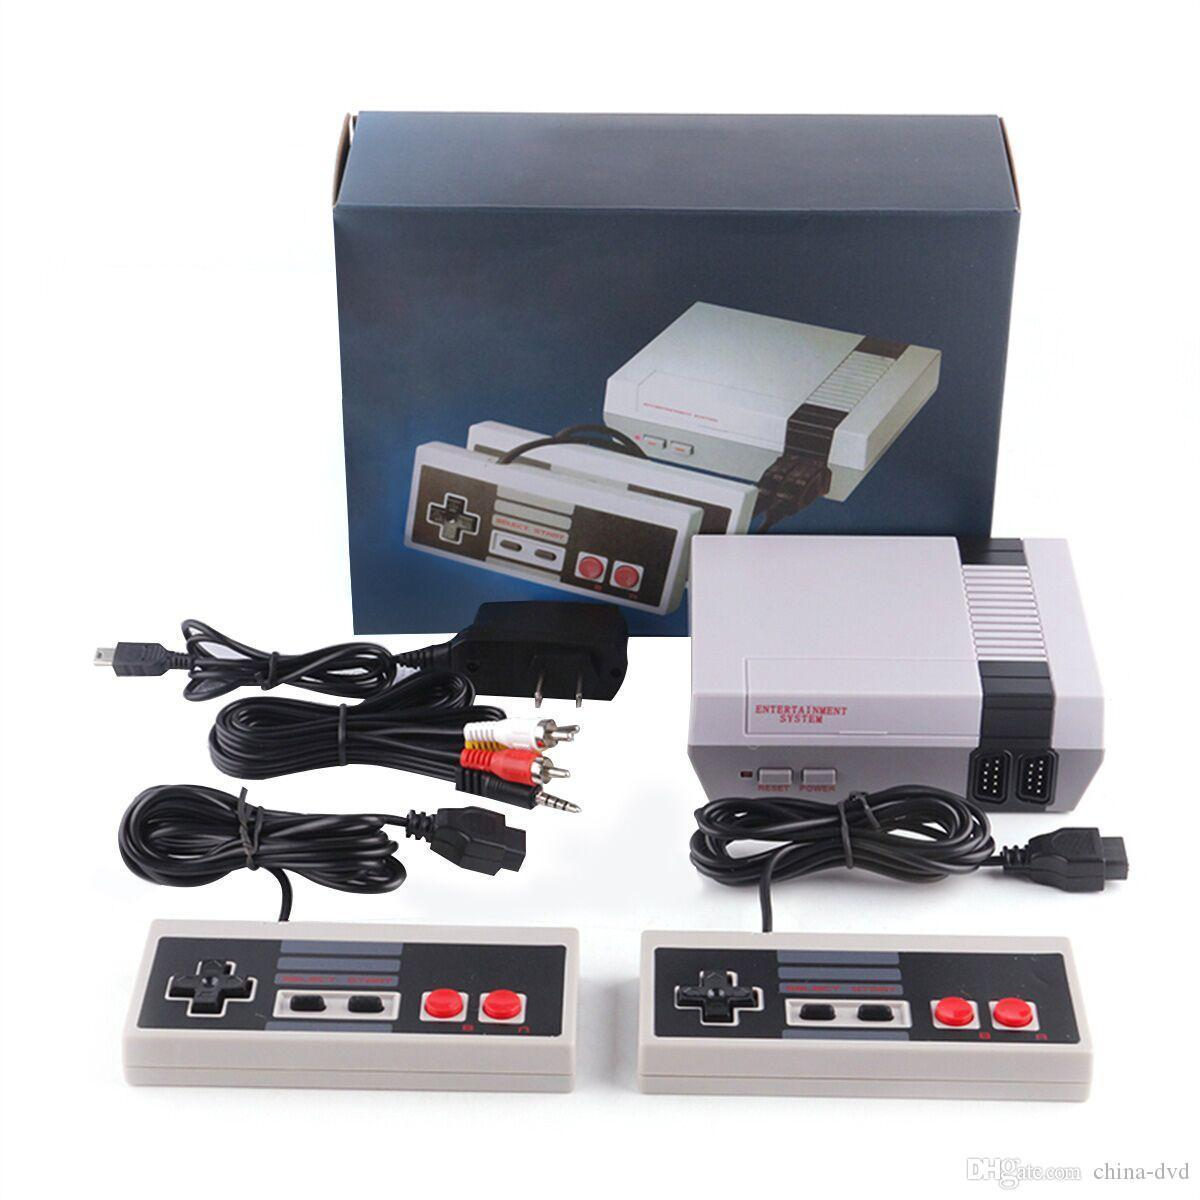 New Arrival Nes Mini TV Can Store 620 500 Portable Game Players Console Video Handheld For NES Games Consoles Wth Retail Box Package cafQJQv